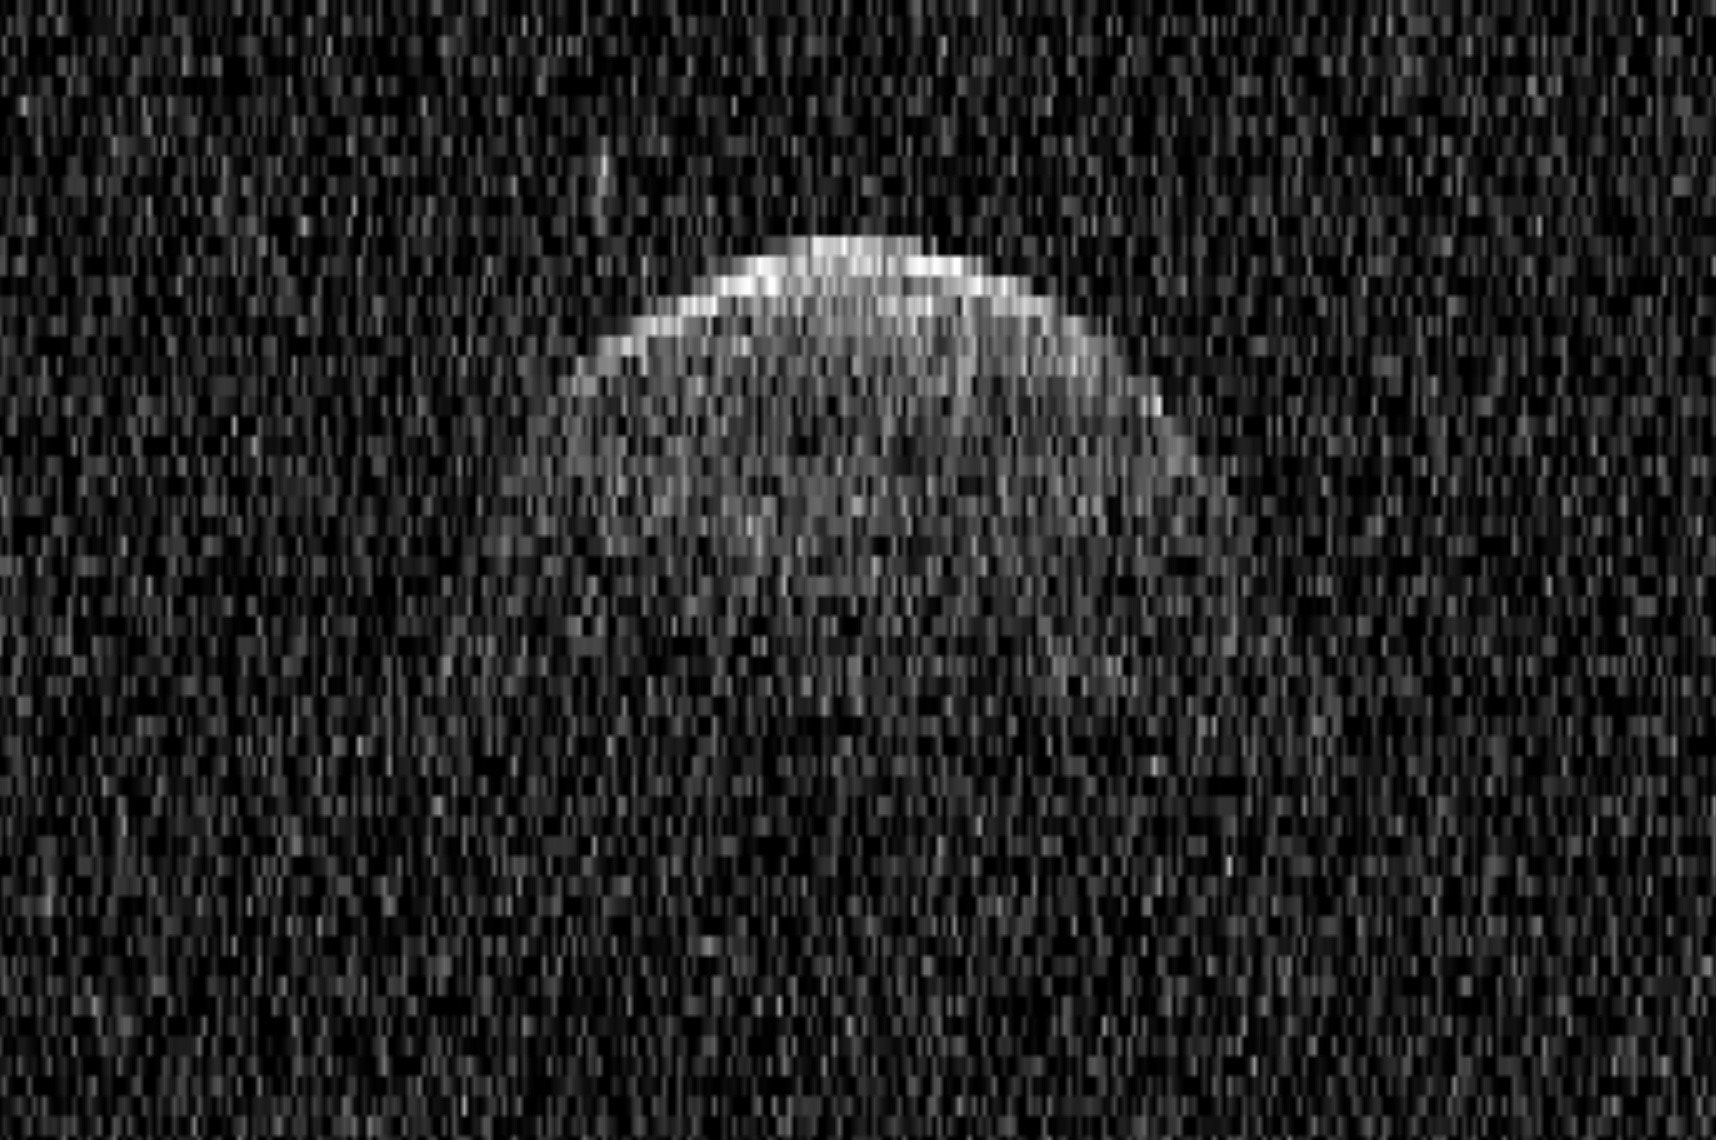 2 moons orbit giant asteroid that buzzed Earth